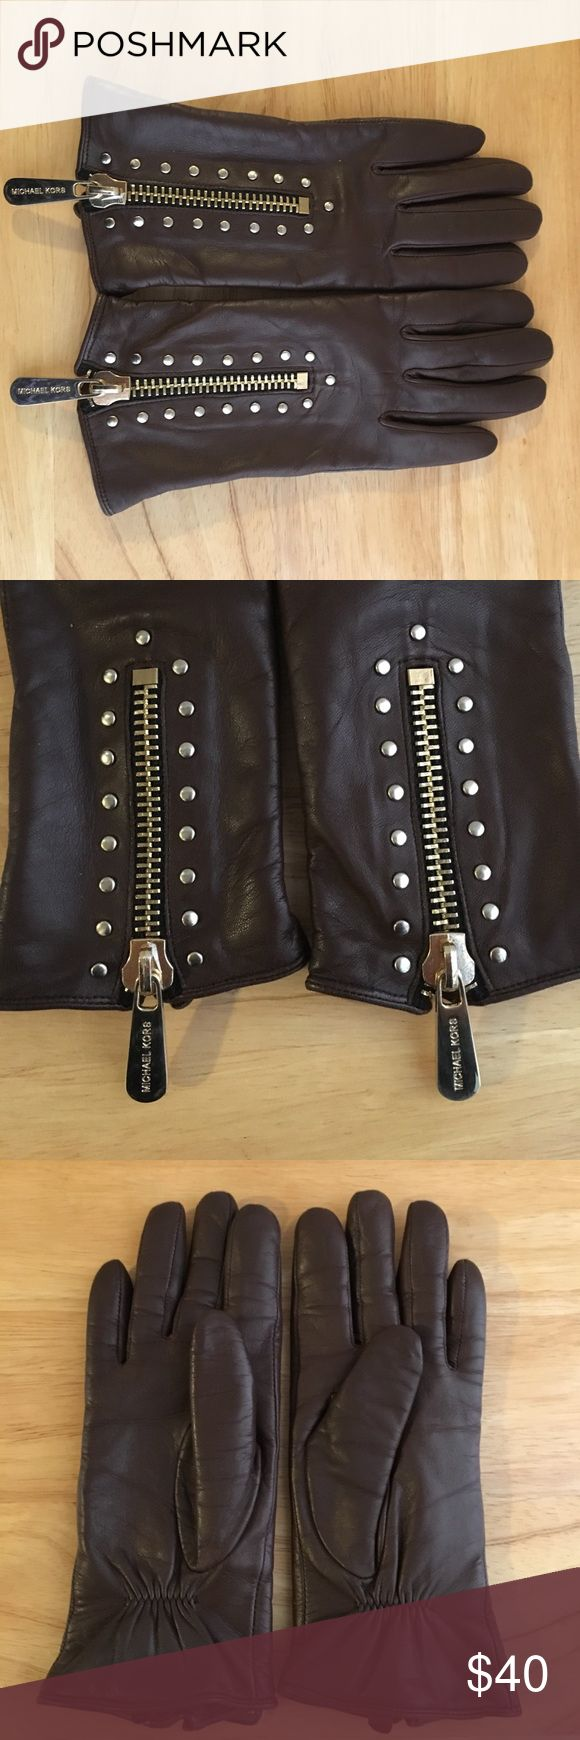 Very mens gloves - Michael Kors Gold Studded Gloves Mk Brown Leather Gloves Gold Tone Zipper And Studs